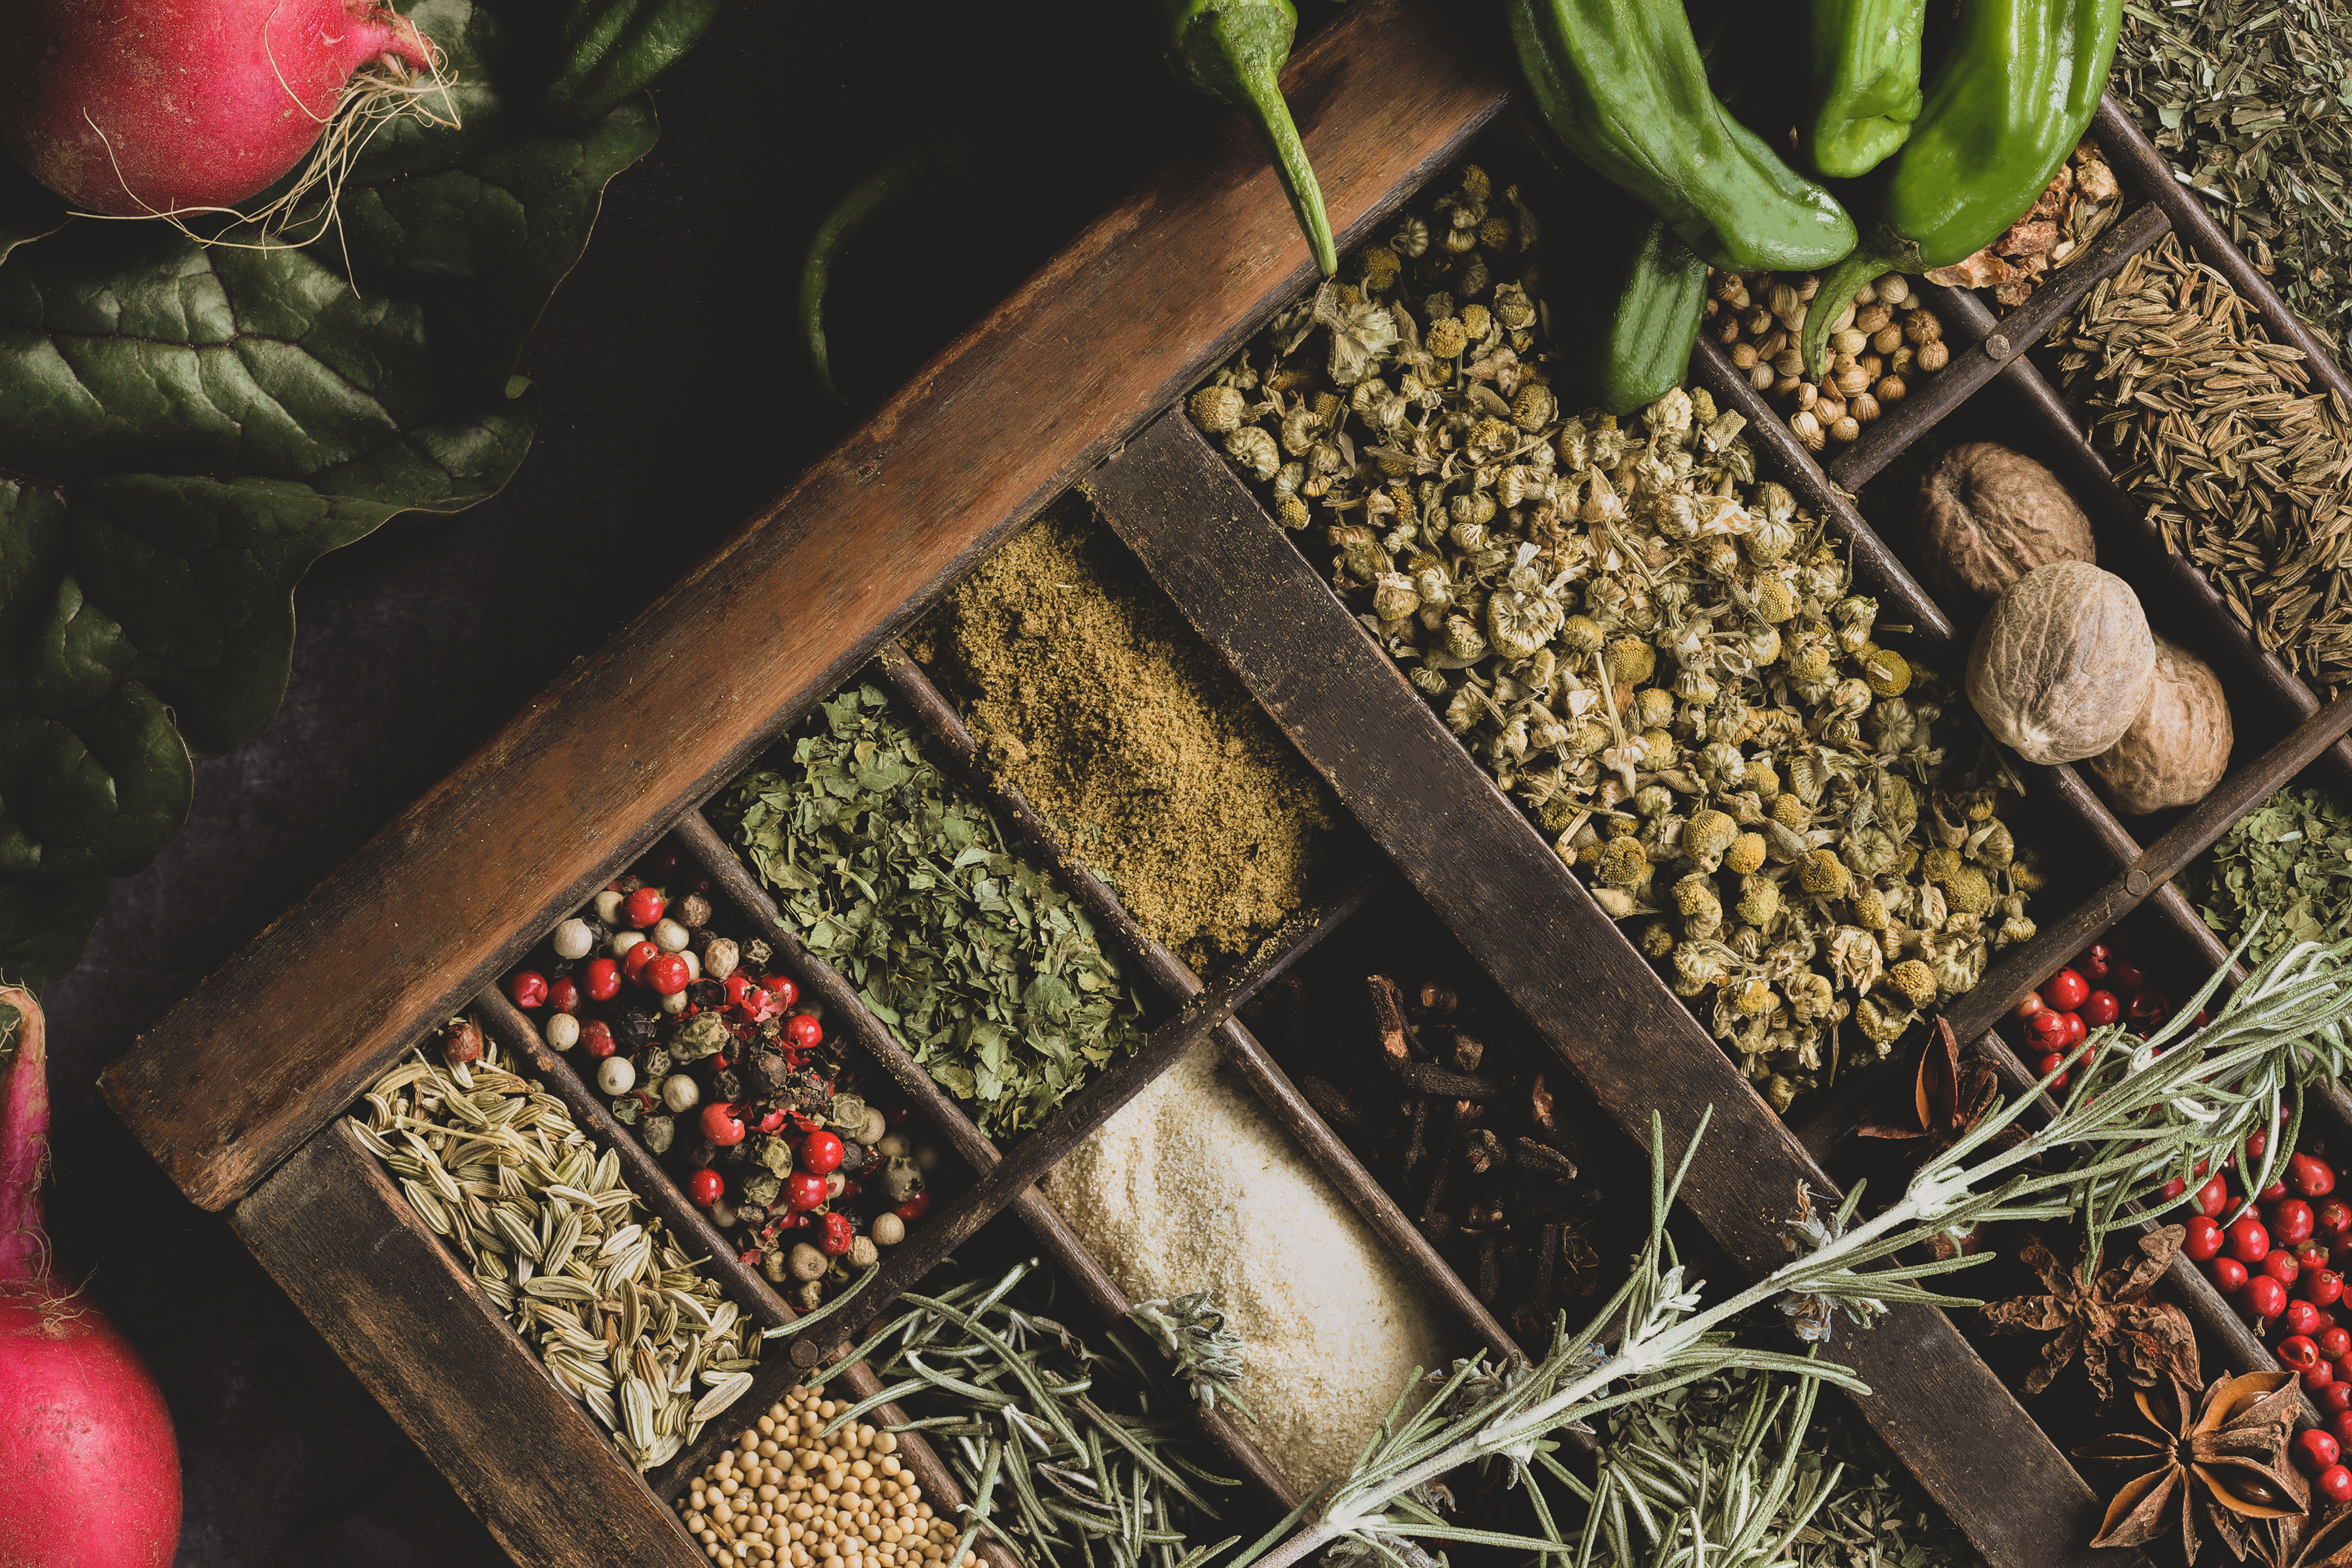 Dried colorful herbs and spices in a beautiful display.